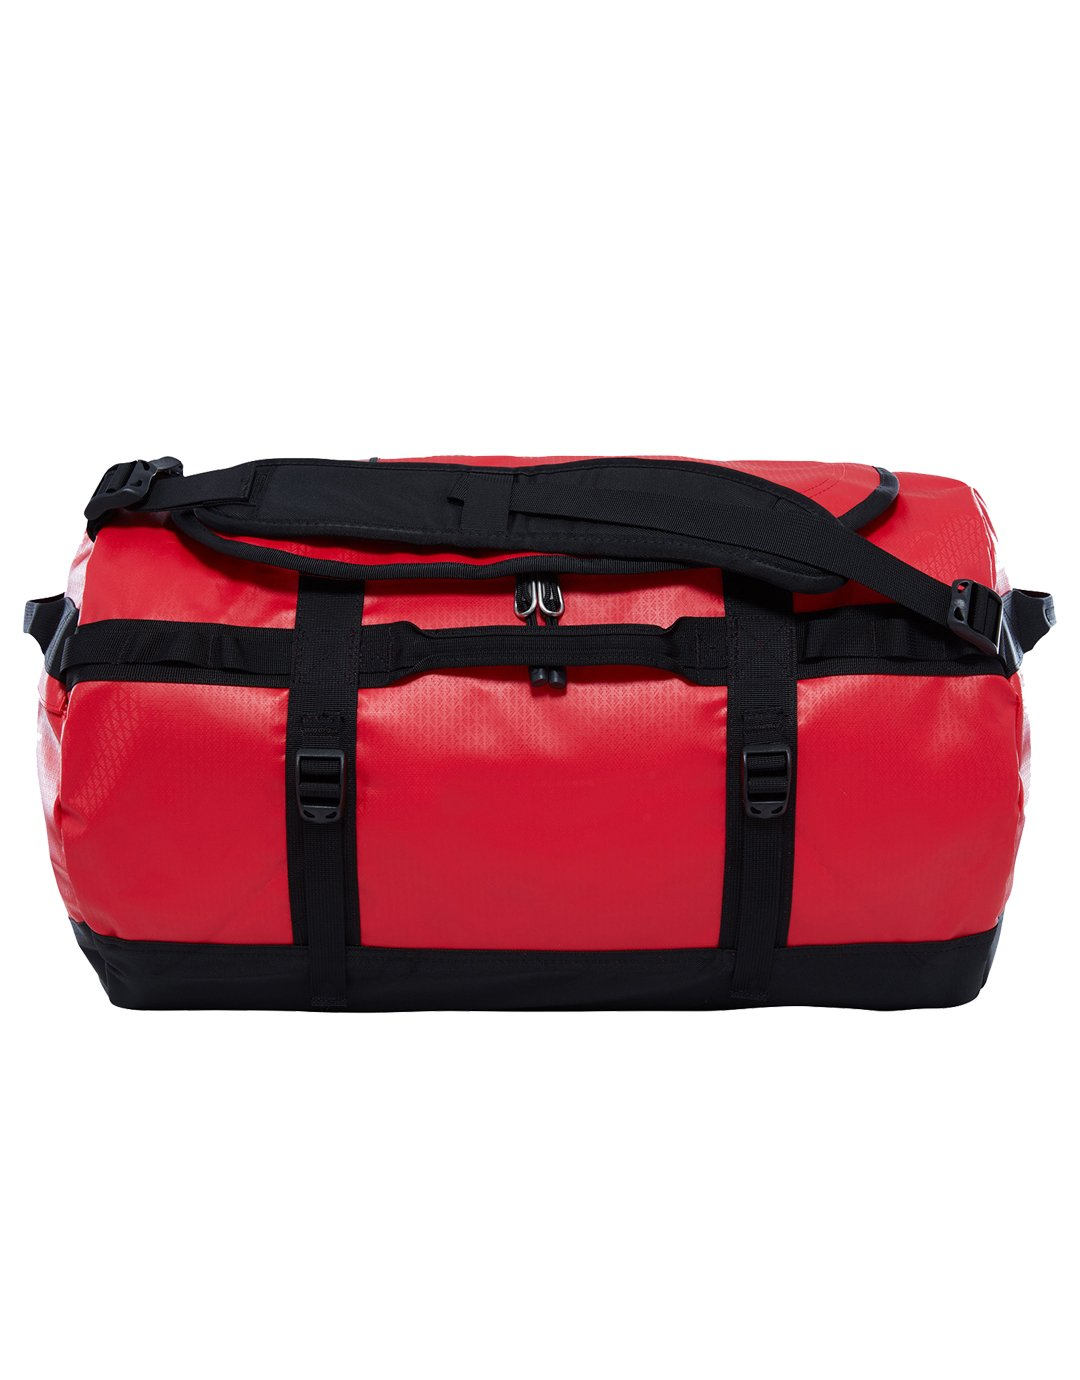 0f9456e3b5 ... The North Face Base Camp Duffel - Small - TNF Red ...